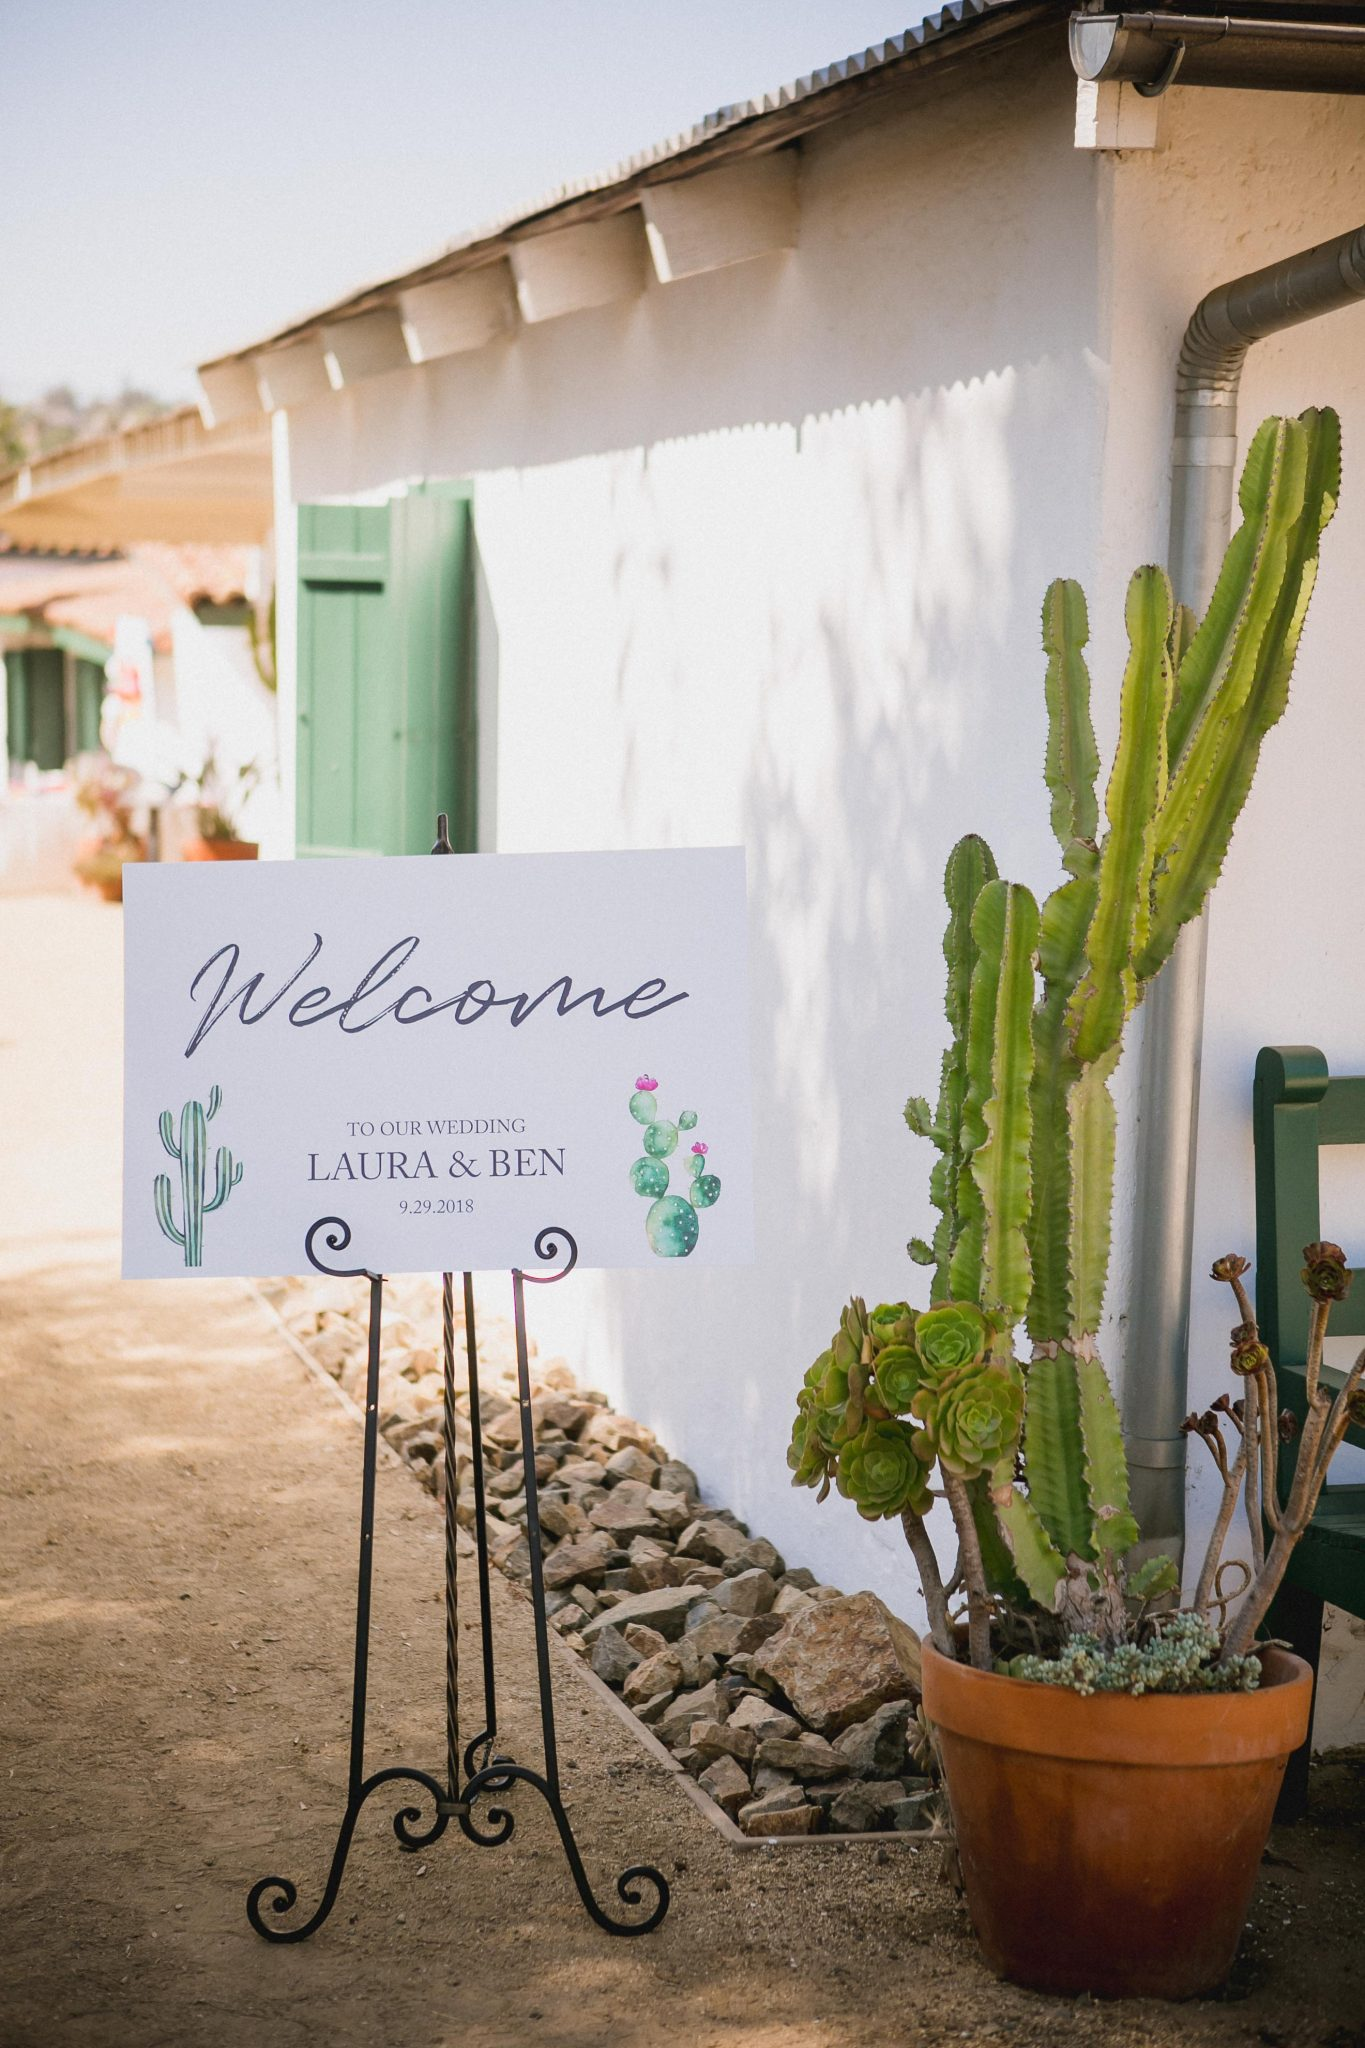 Wedding welcome sign ceremony detail